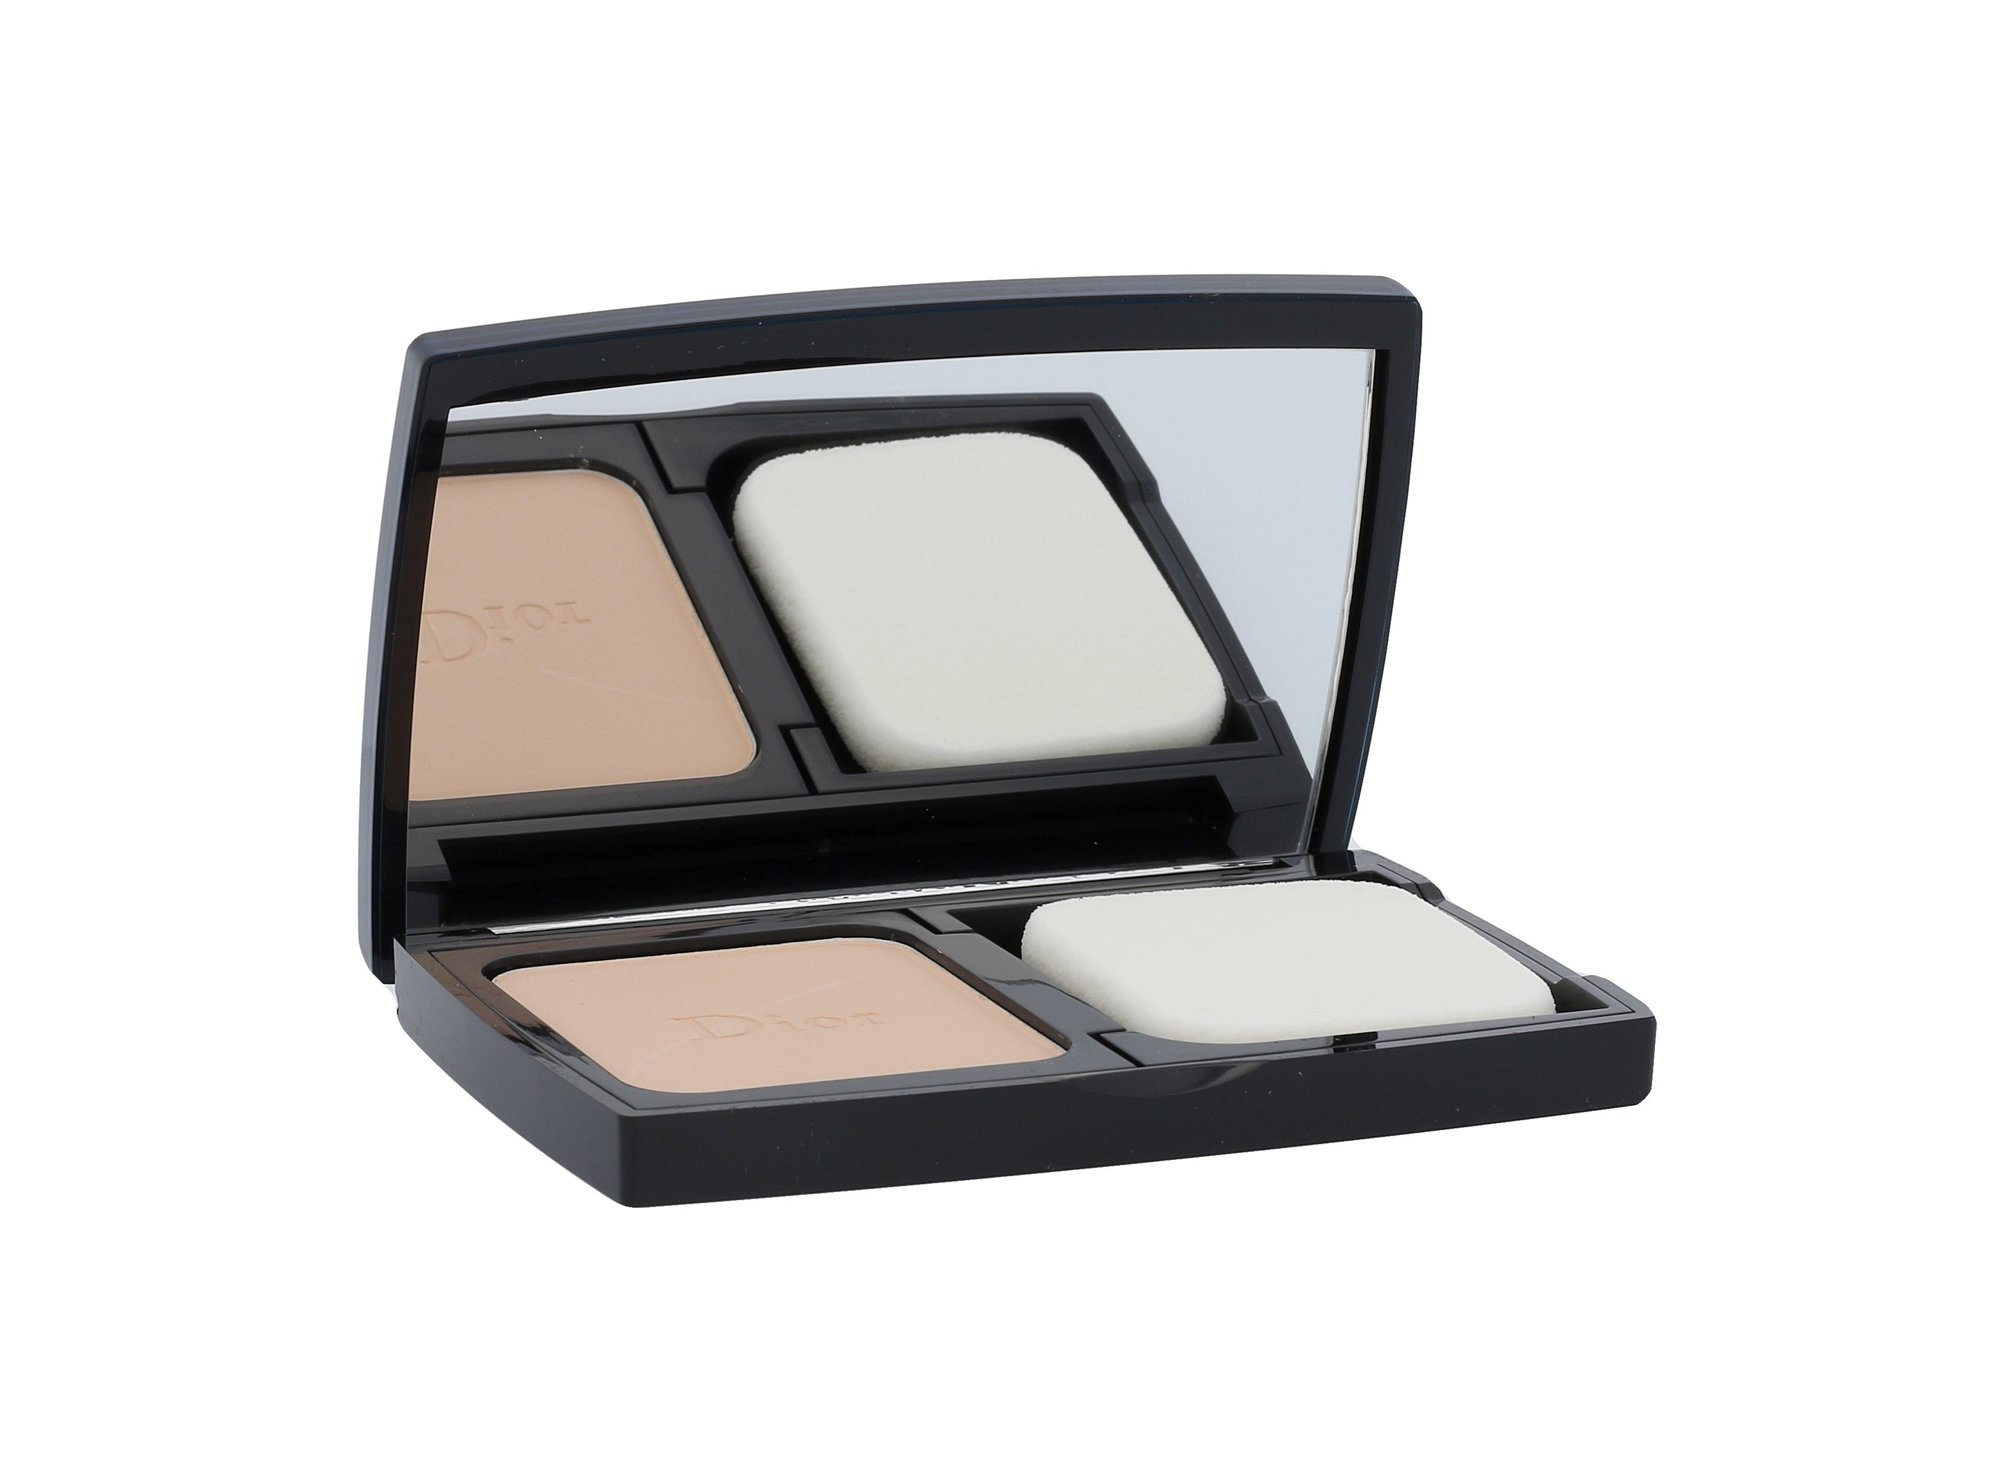 Christian Dior Diorskin Forever Compact Cosmetic 10ml 010 Ivory